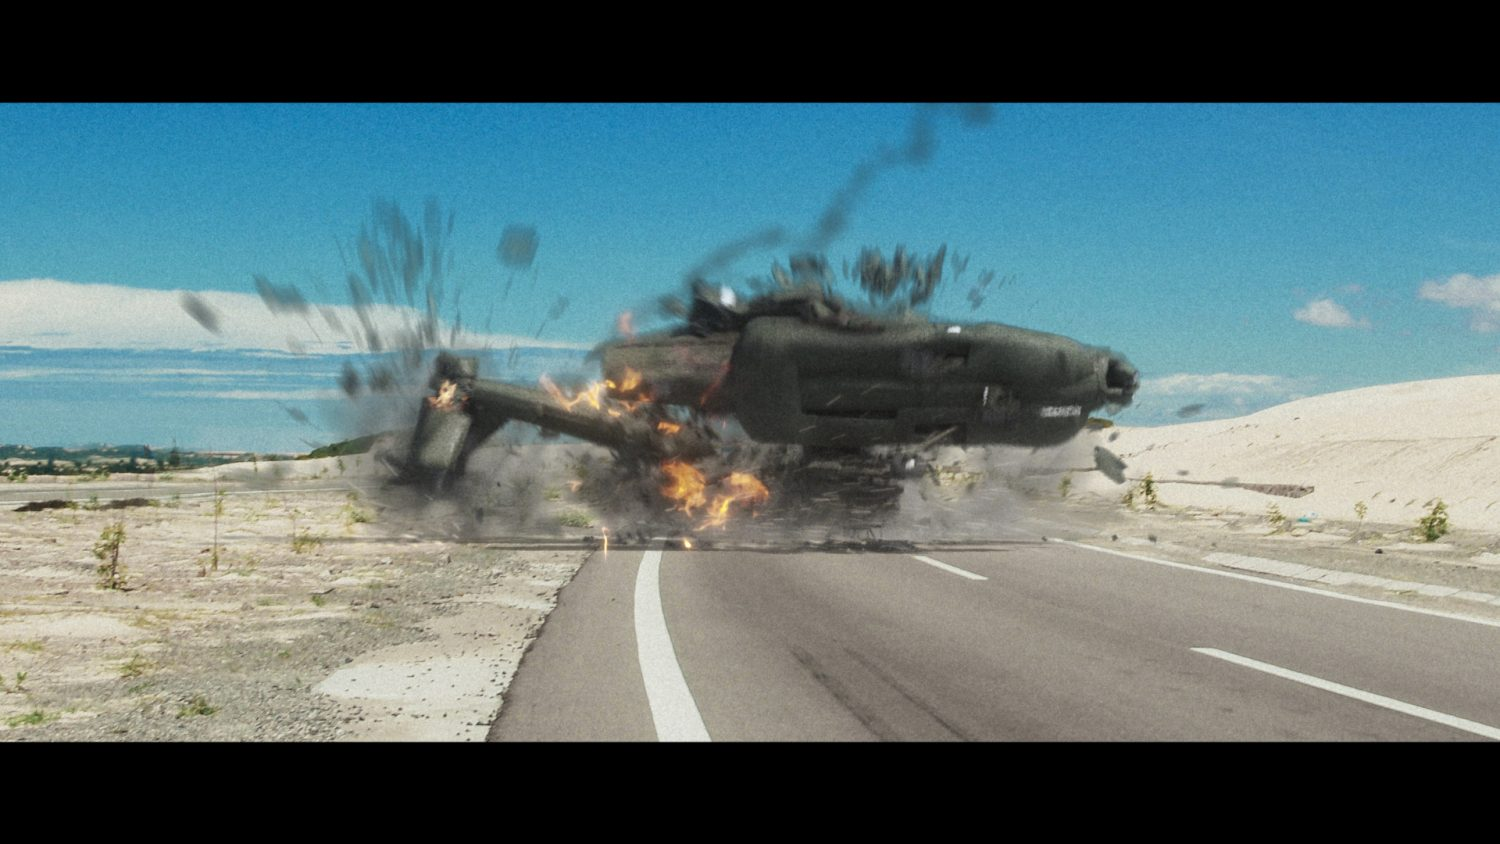 Helicopter Crash VFX for your Videos